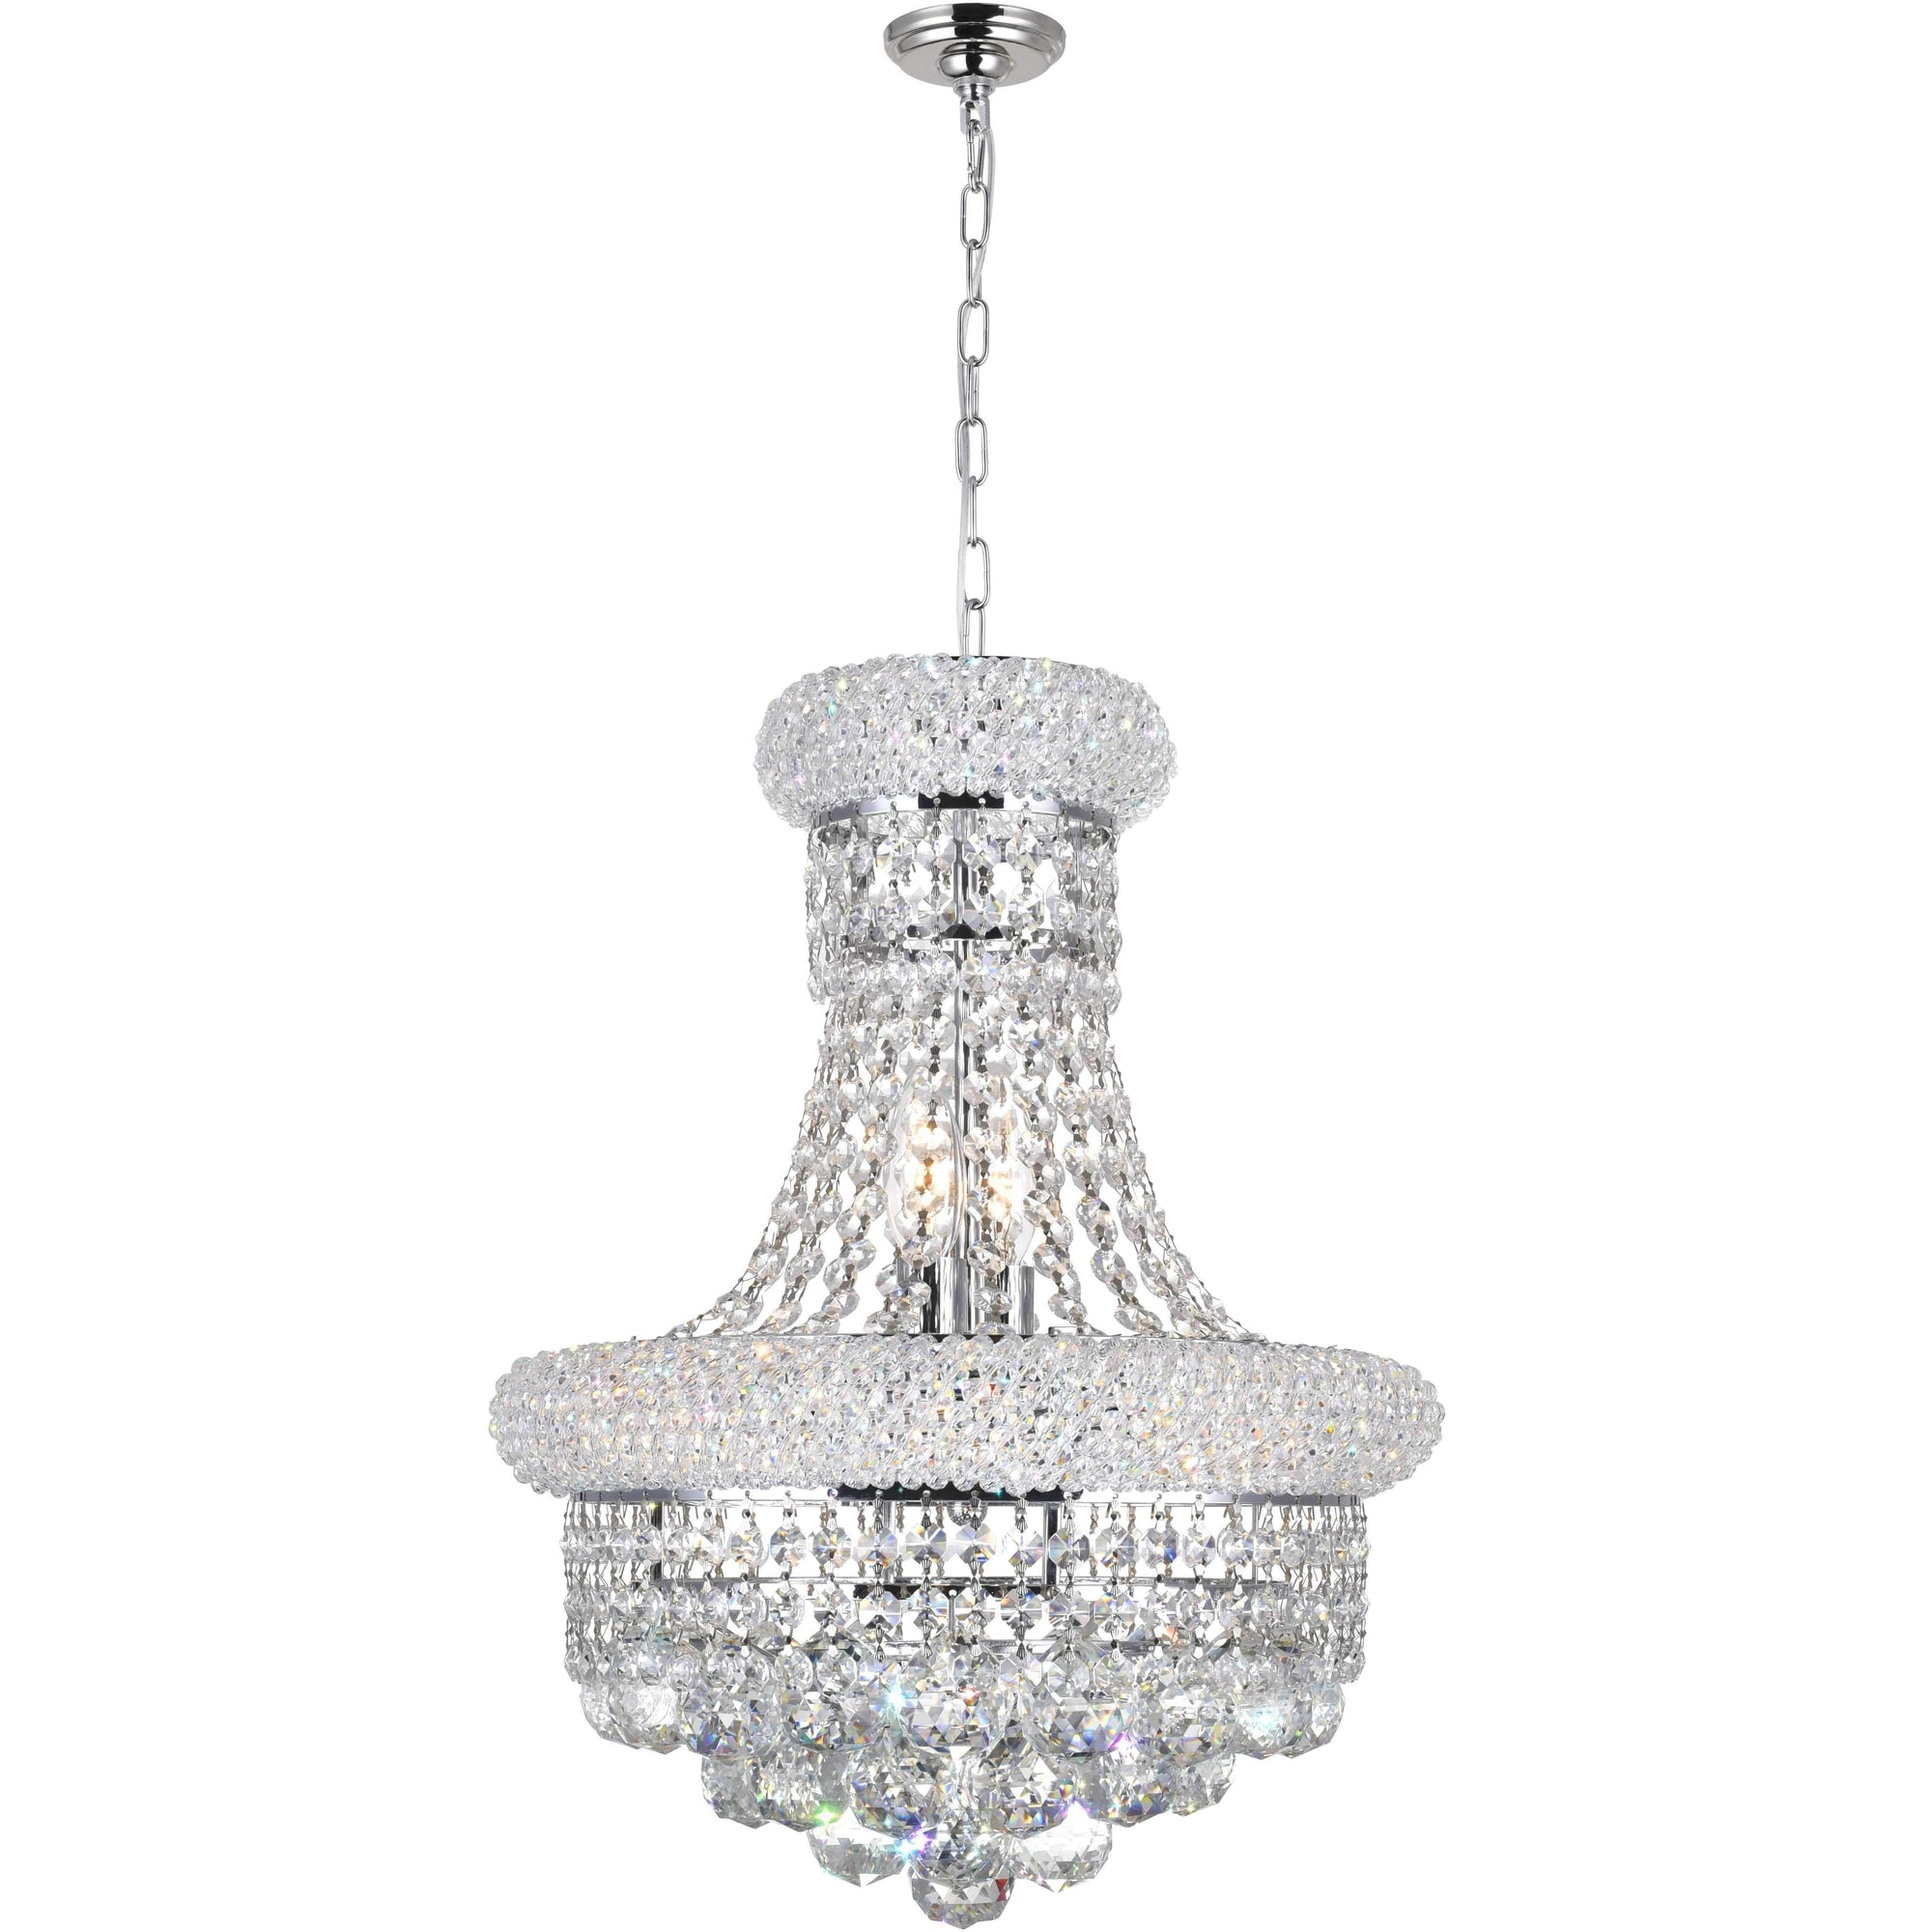 CWI Lighting Chandeliers Chrome / K9 Clear Empire 6 Light Chandelier with Chrome finish by CWI Lighting 8001P14C